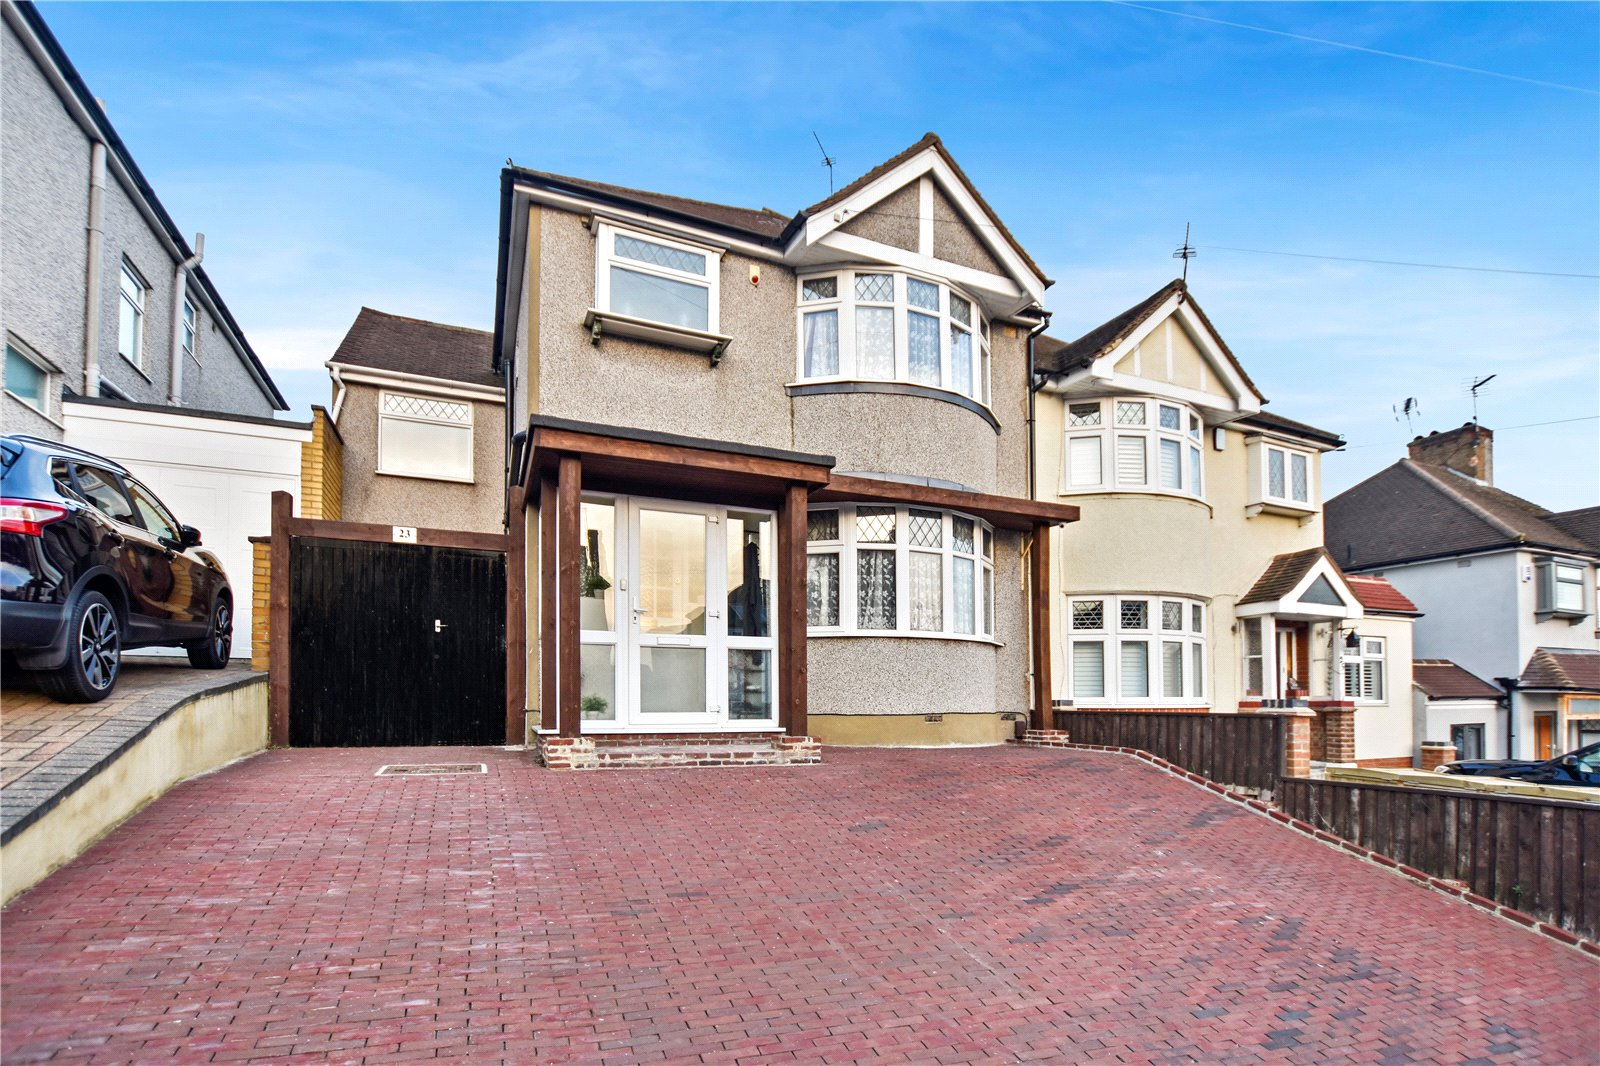 Meadowview Road, Bexley, Kent, DA5